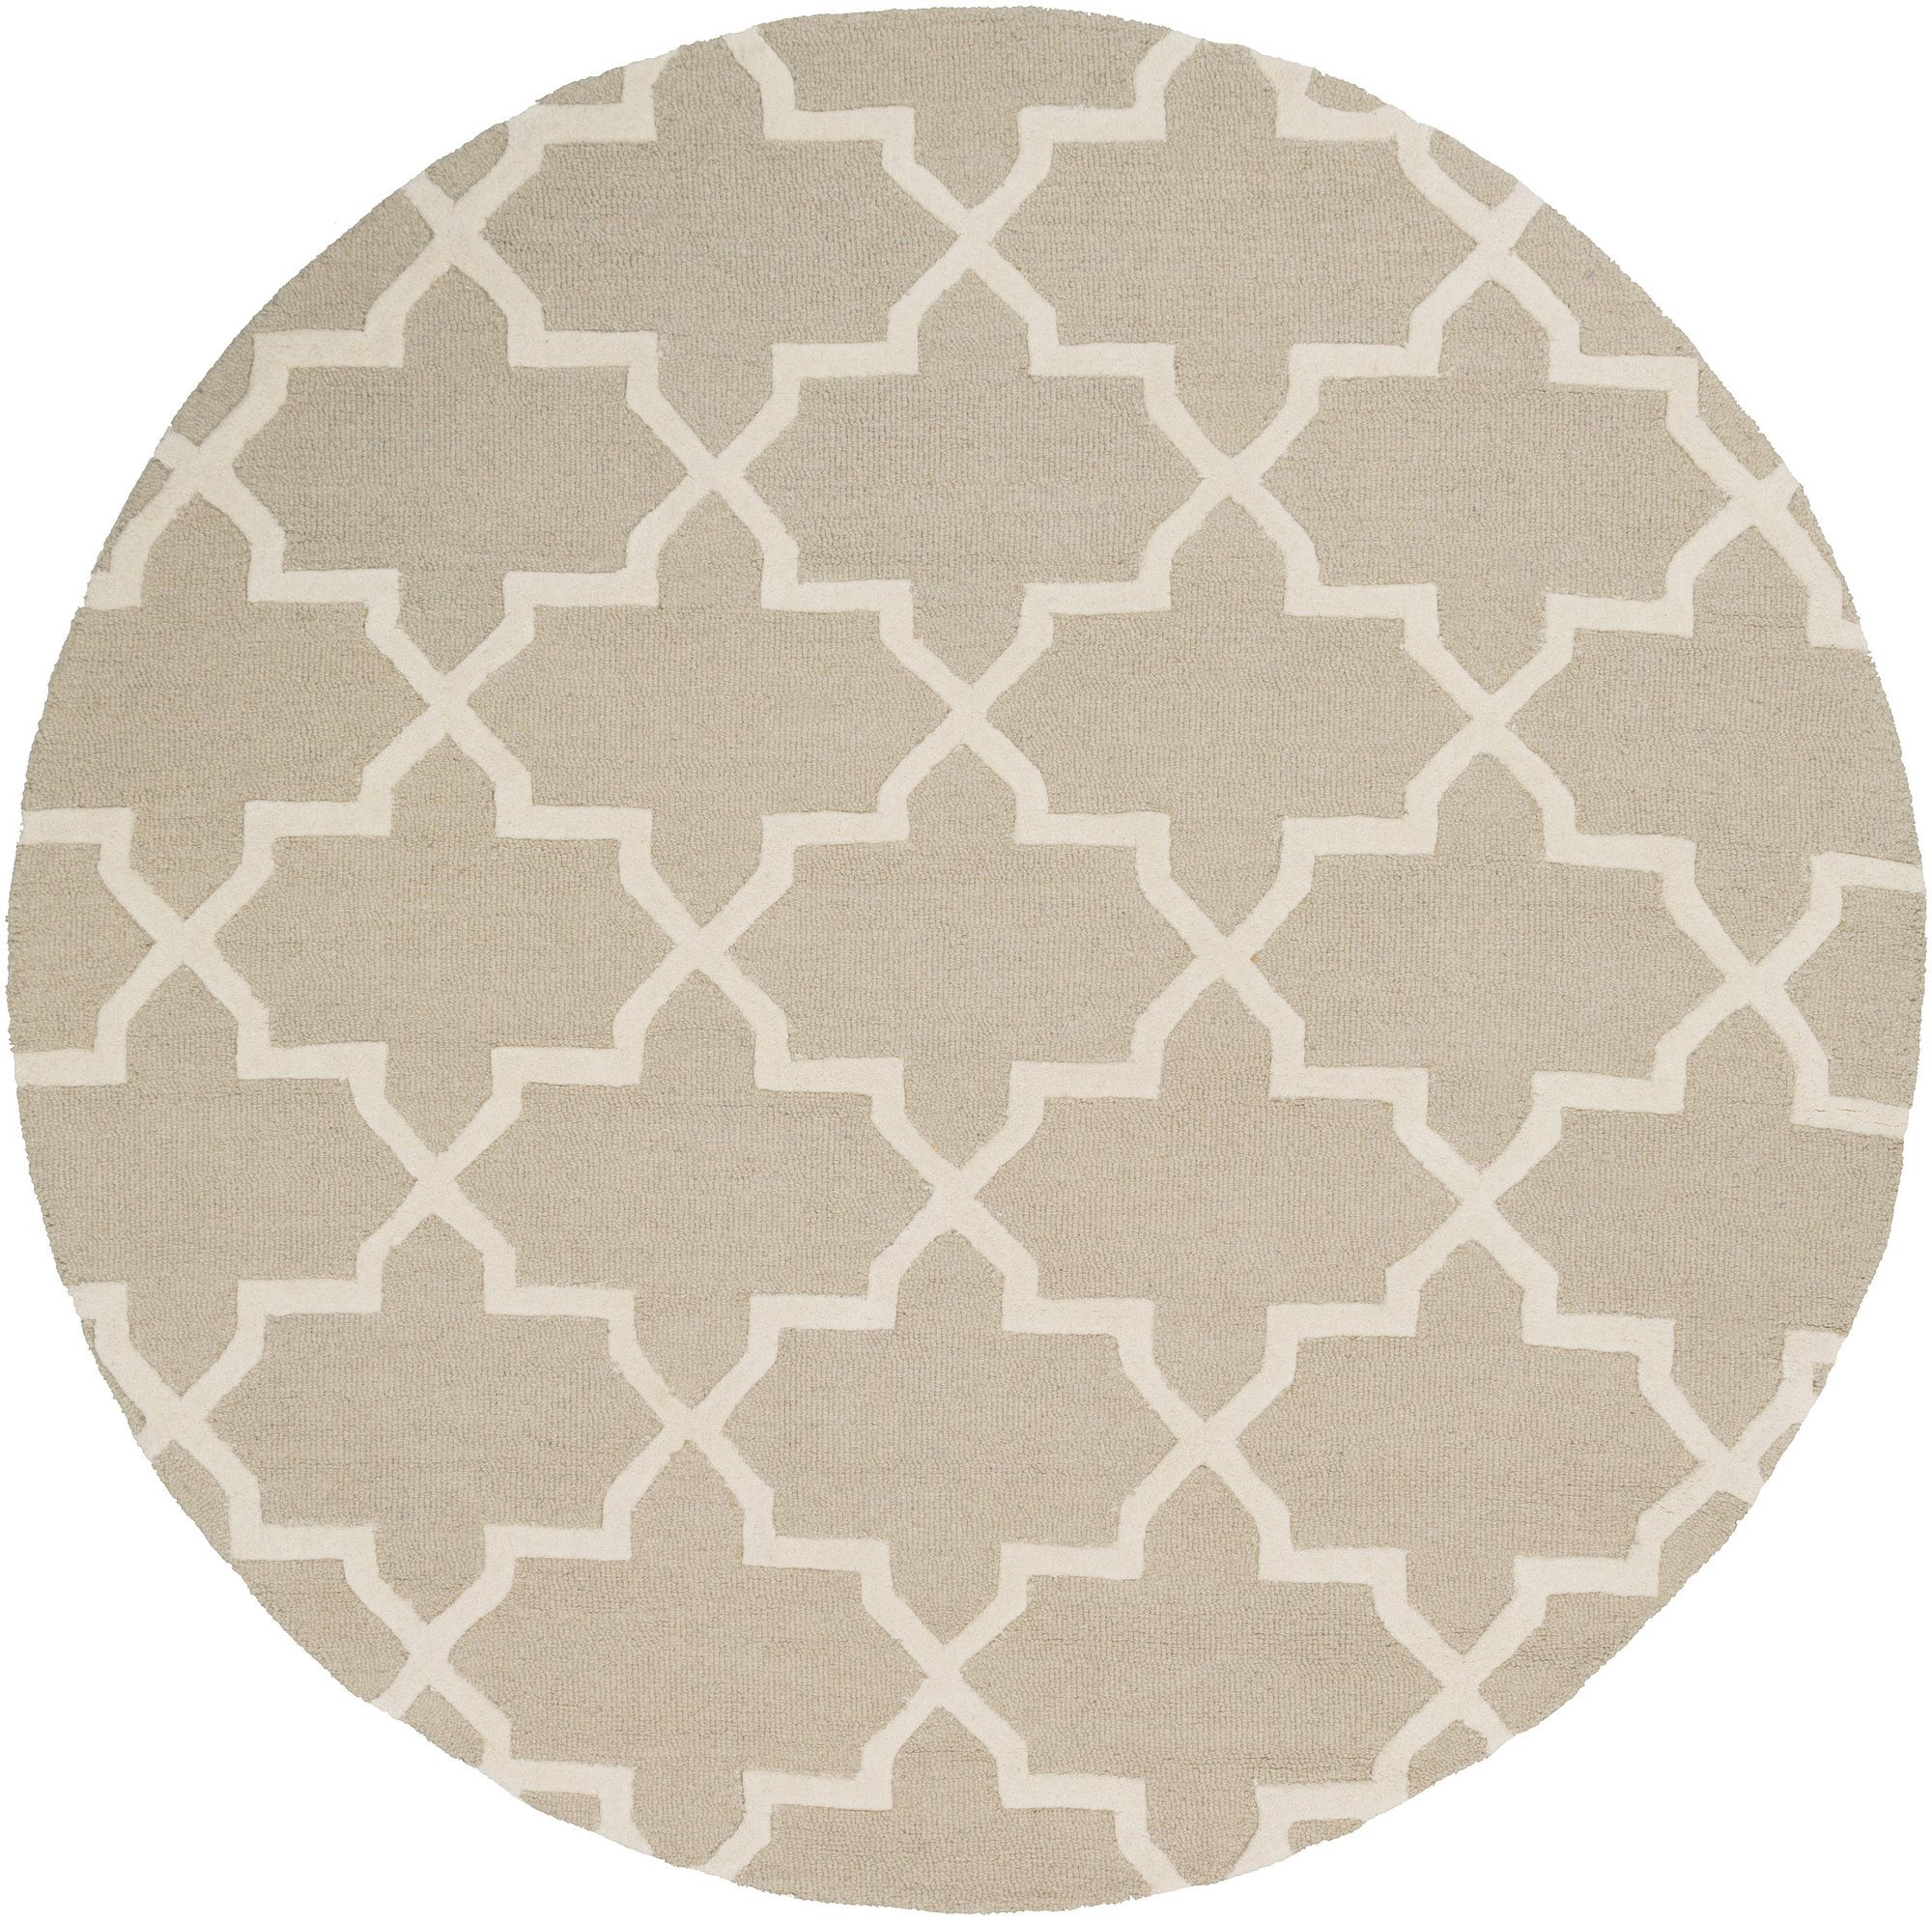 Galinda Beige Geometric Wool Hand-Tufted Area Rug